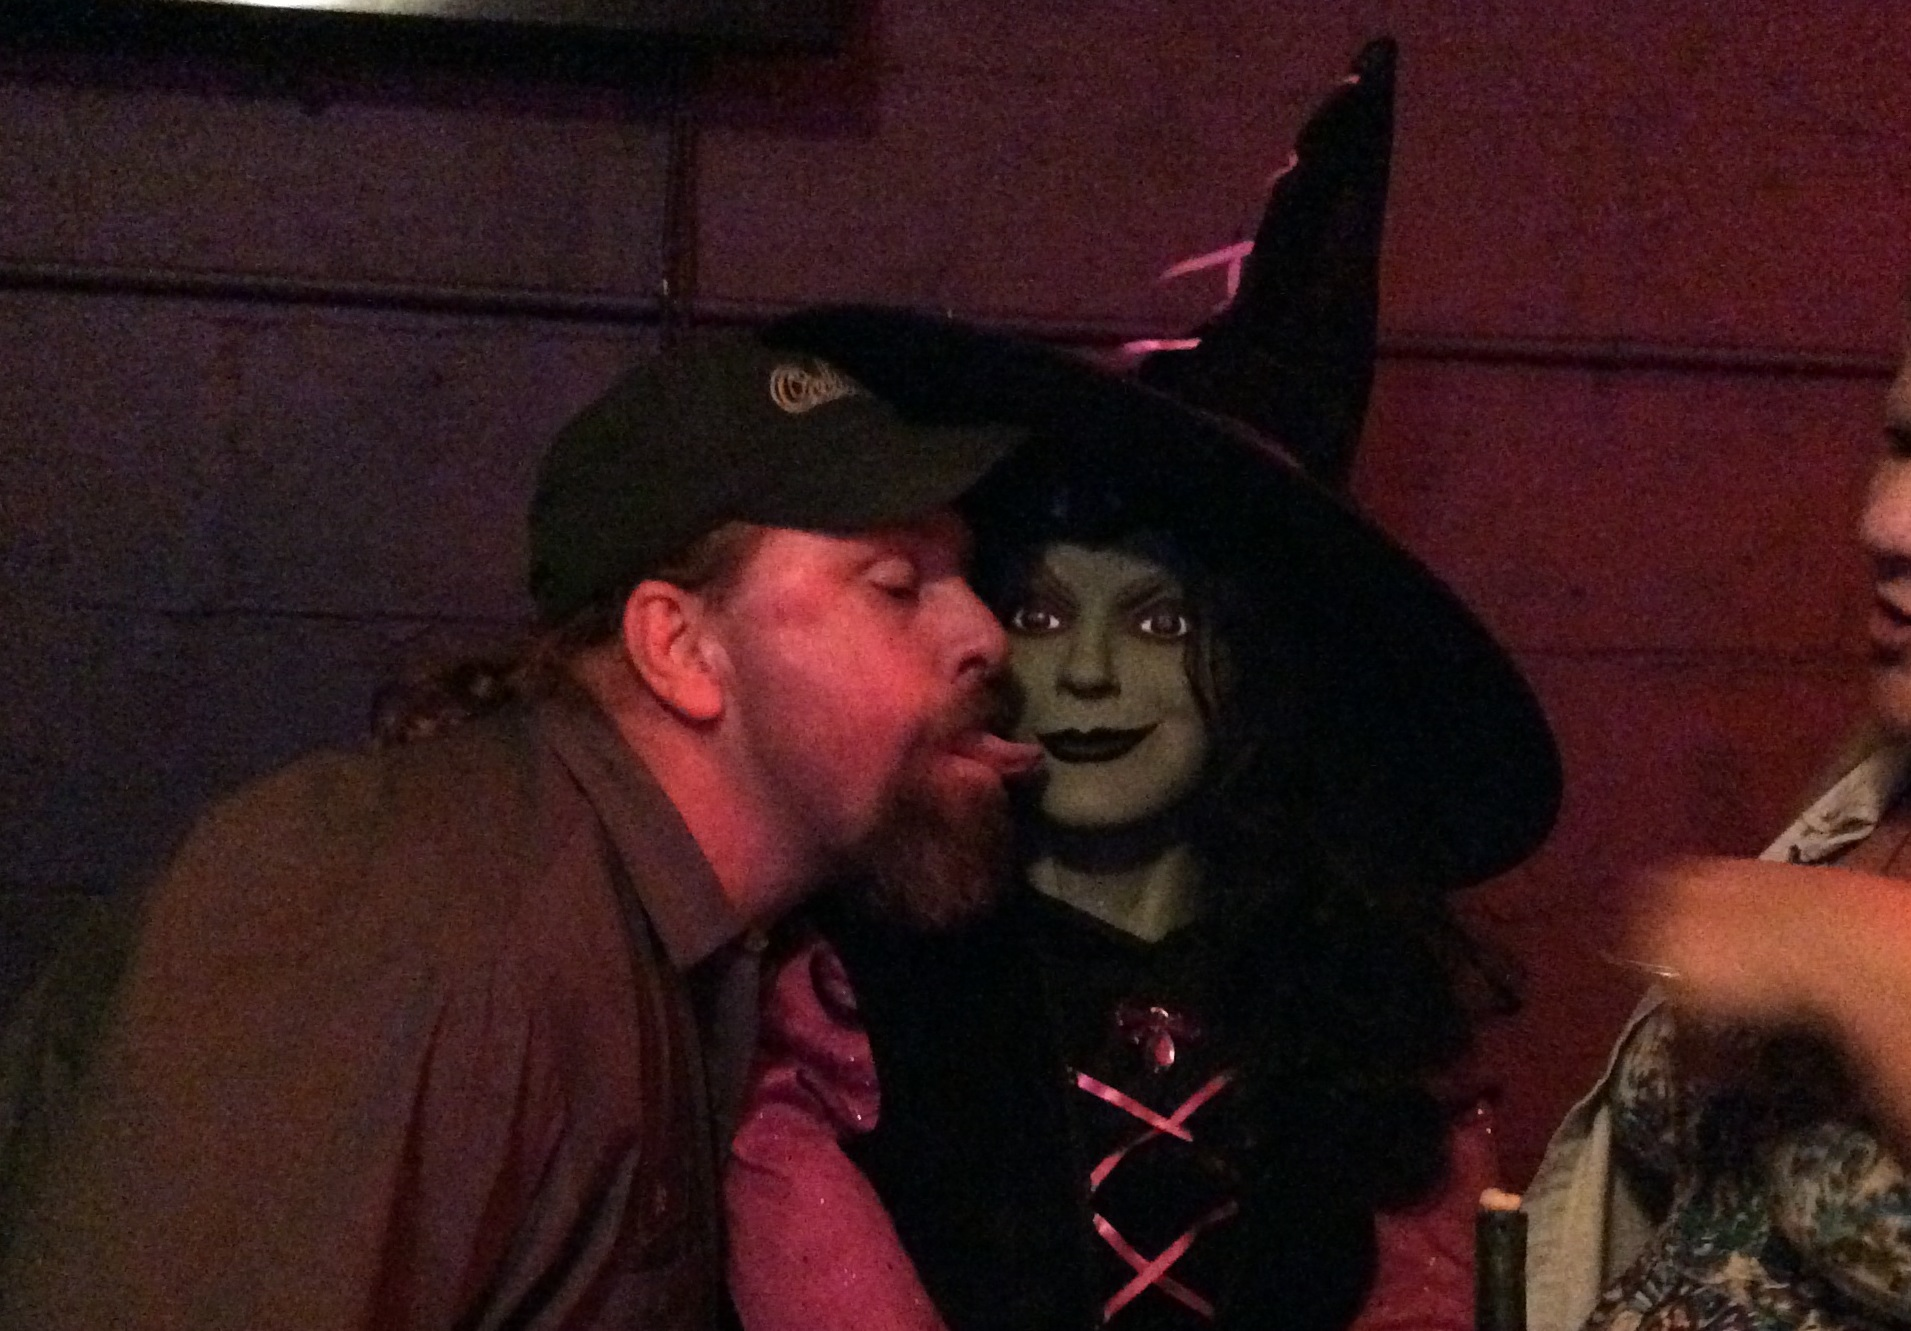 Bo and the Witch